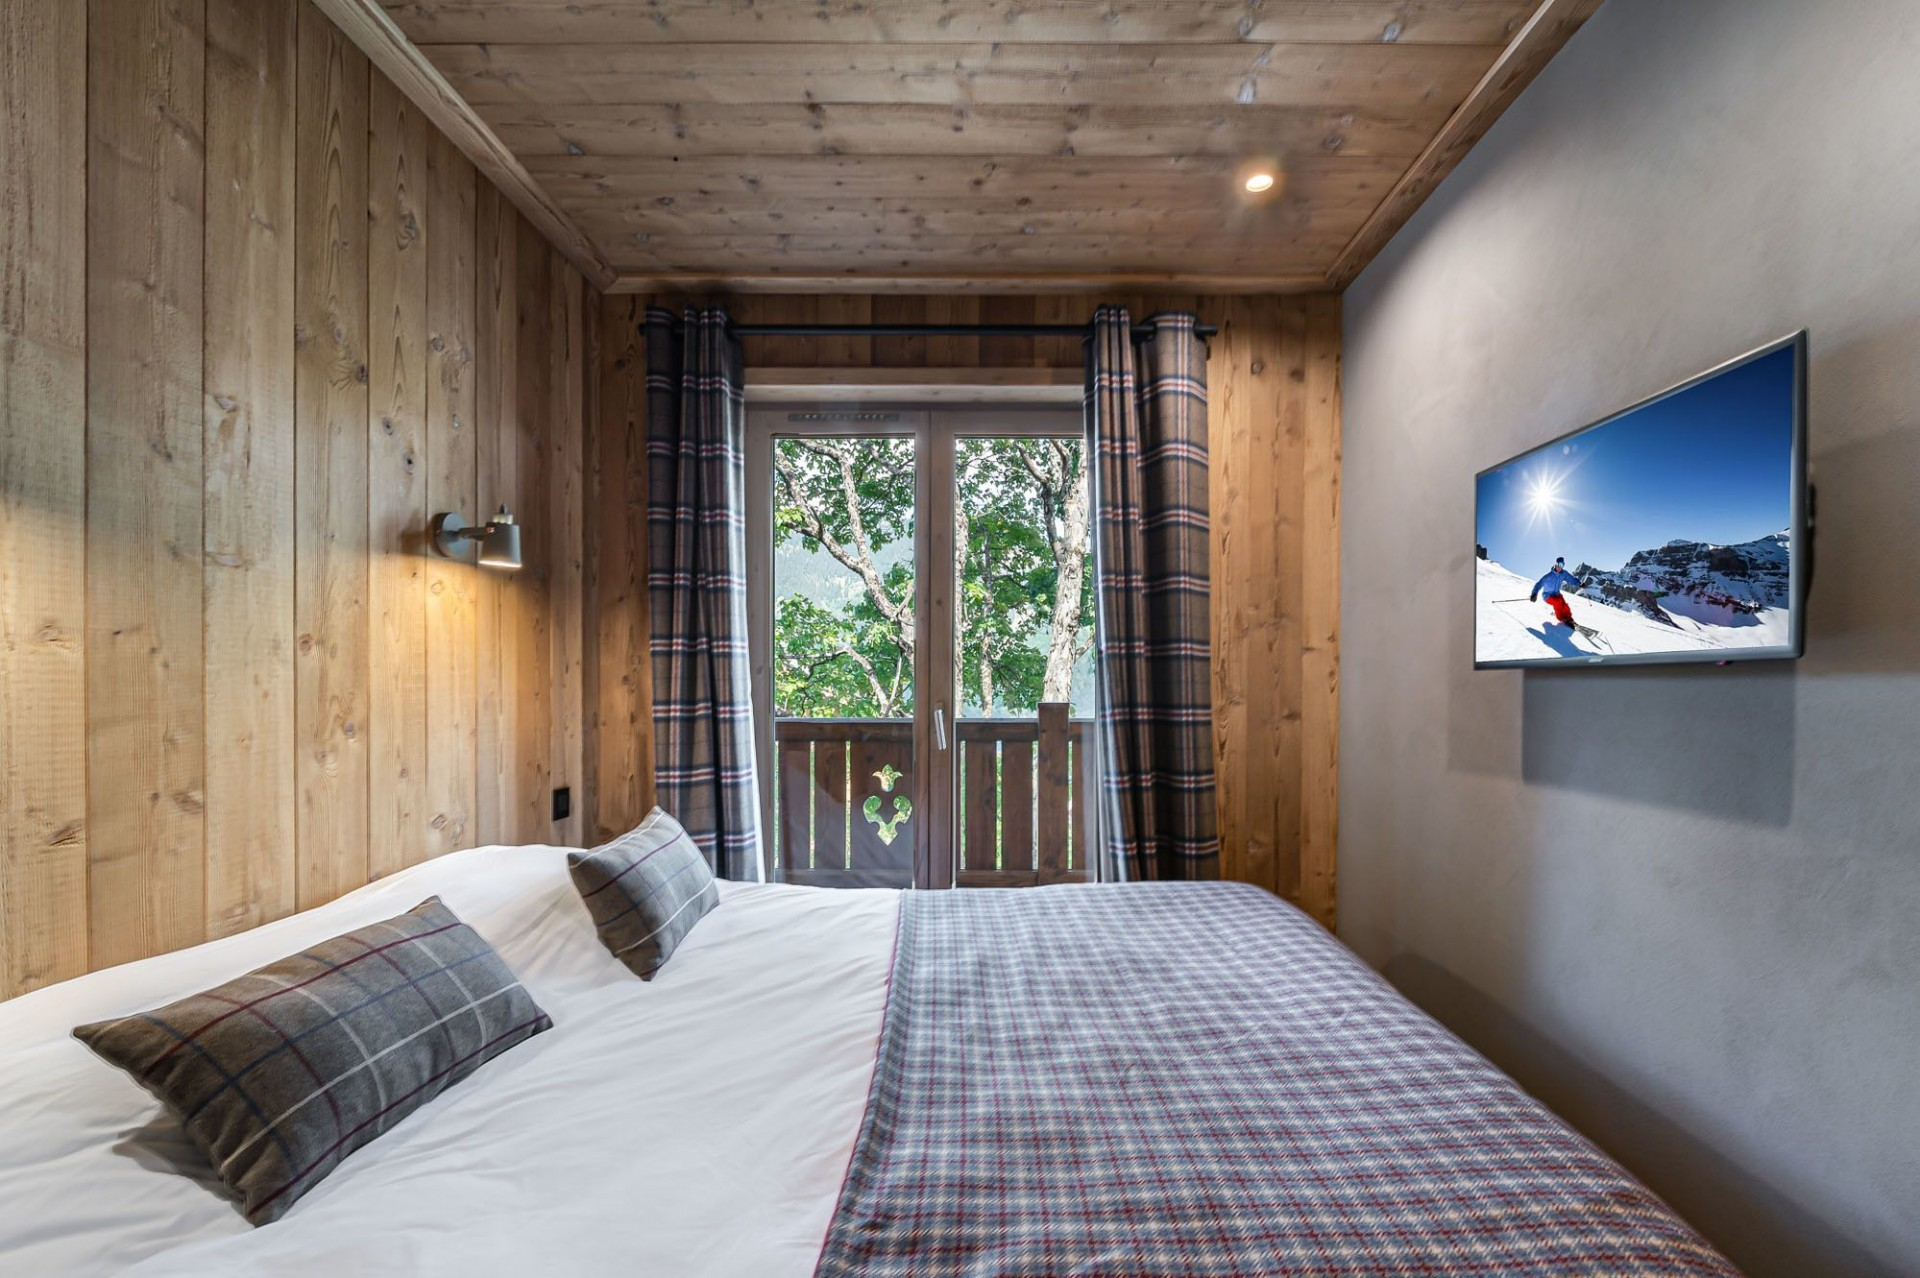 Courchevel 1300 Location Appartement Luxe Tilute Chambre 4